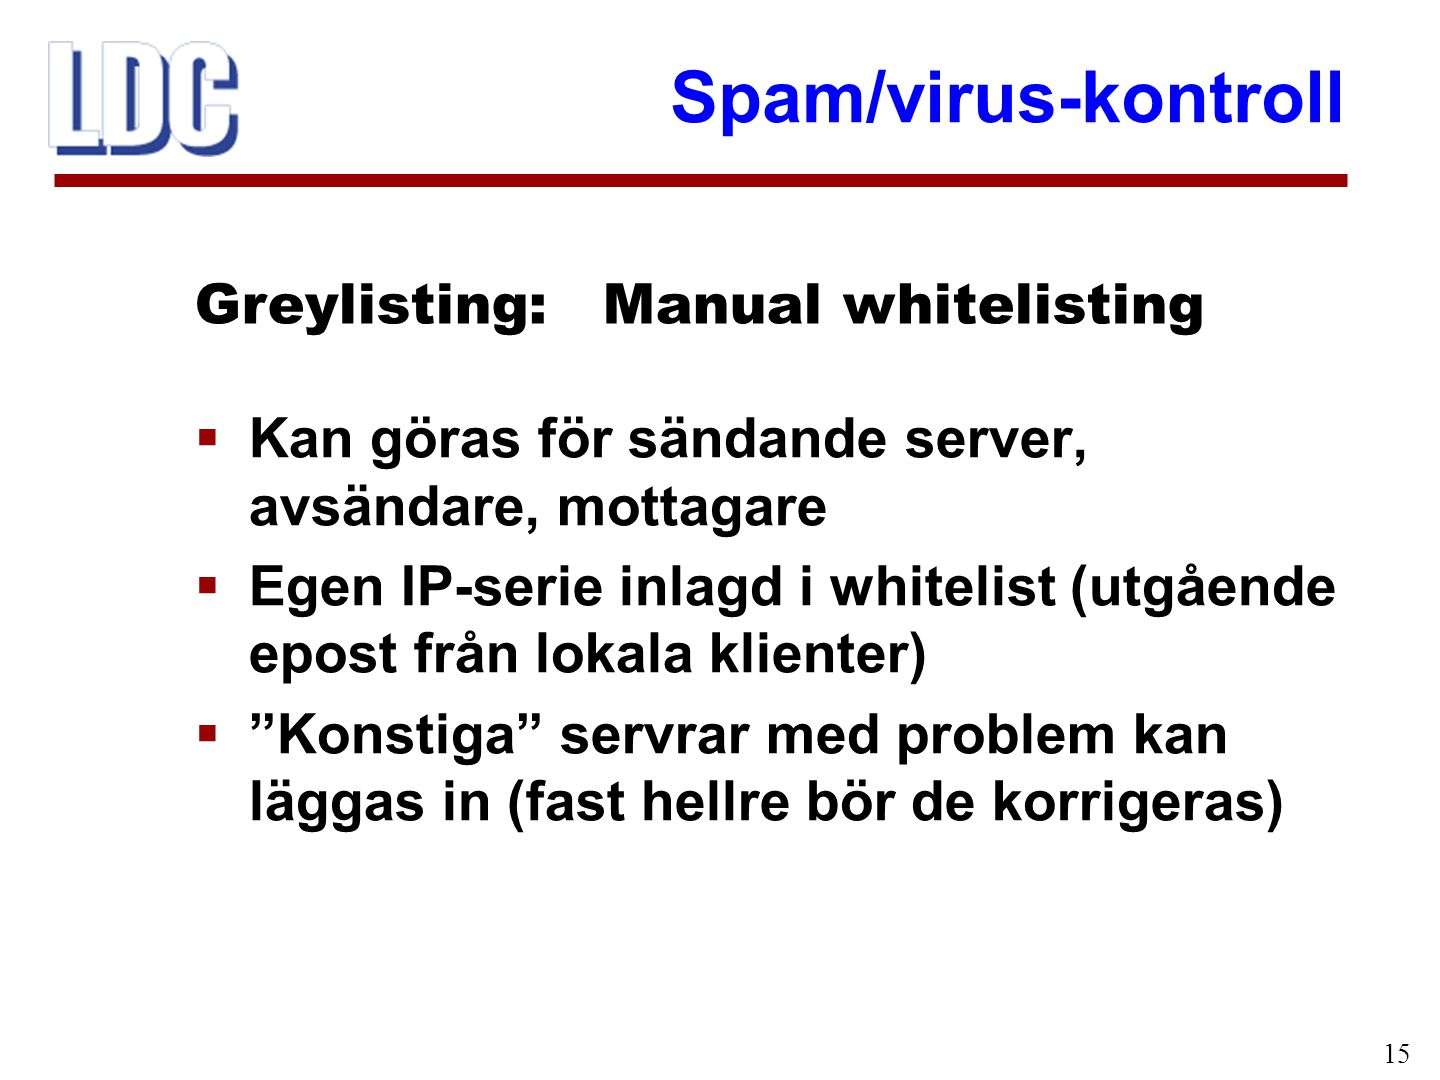 Greylisting: Manual whitelisting